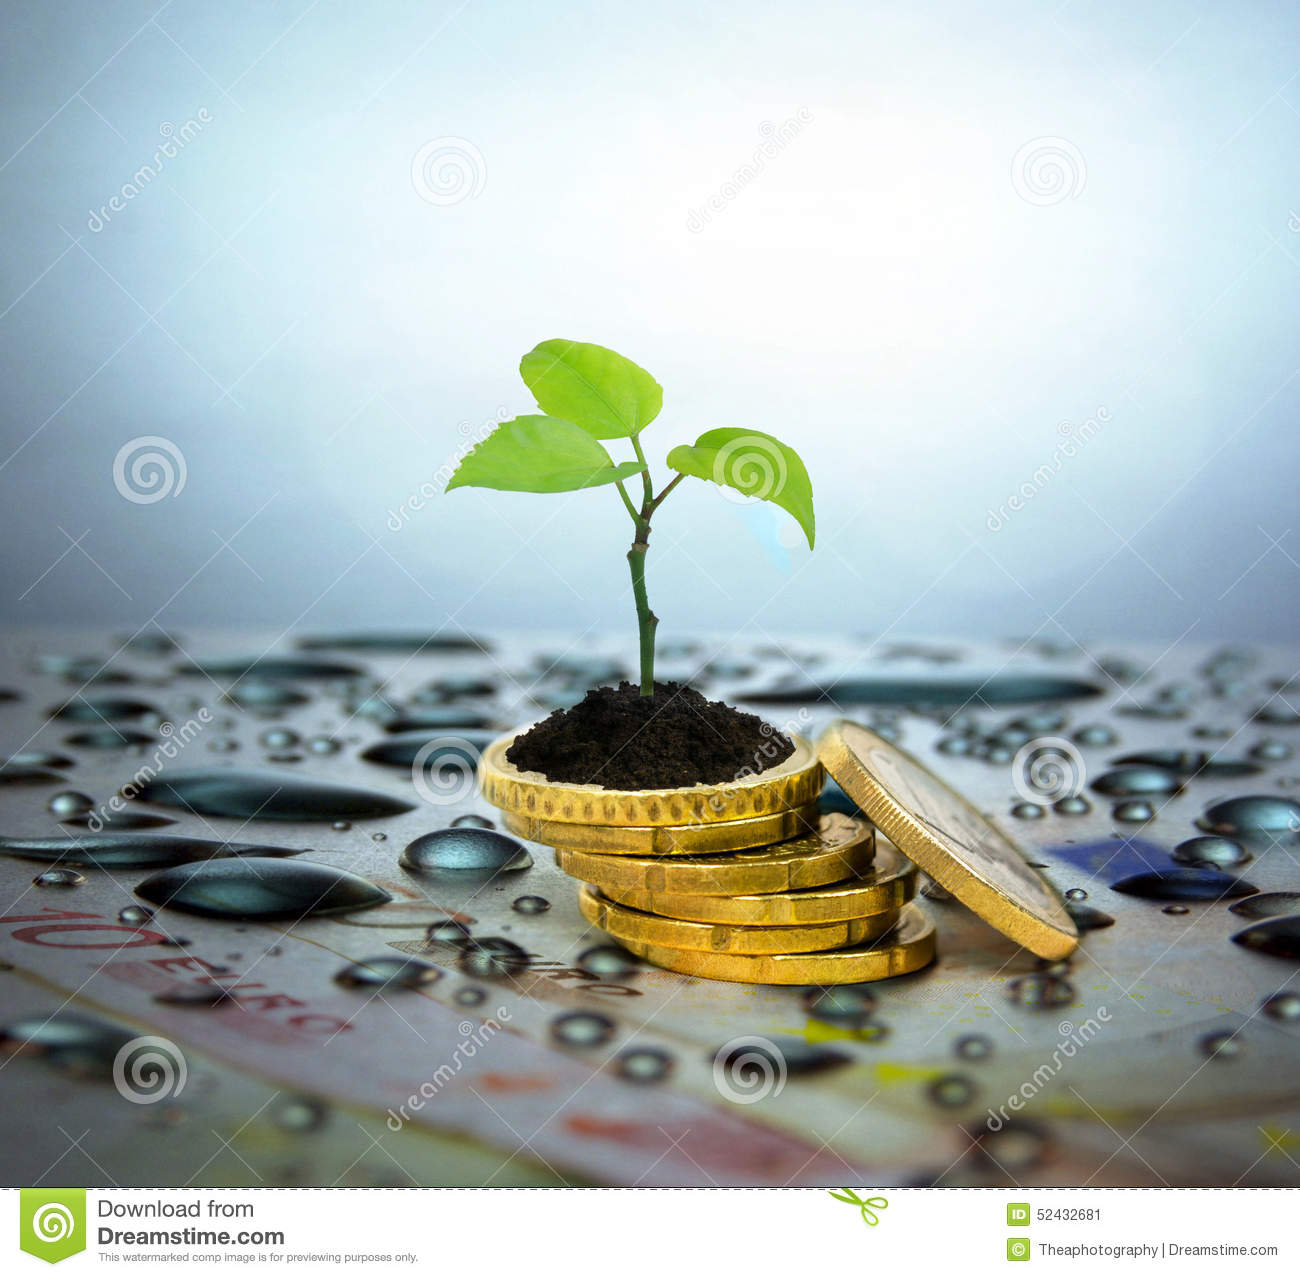 Finance Tree: Financial Planning And Banking Related Series Stock Image